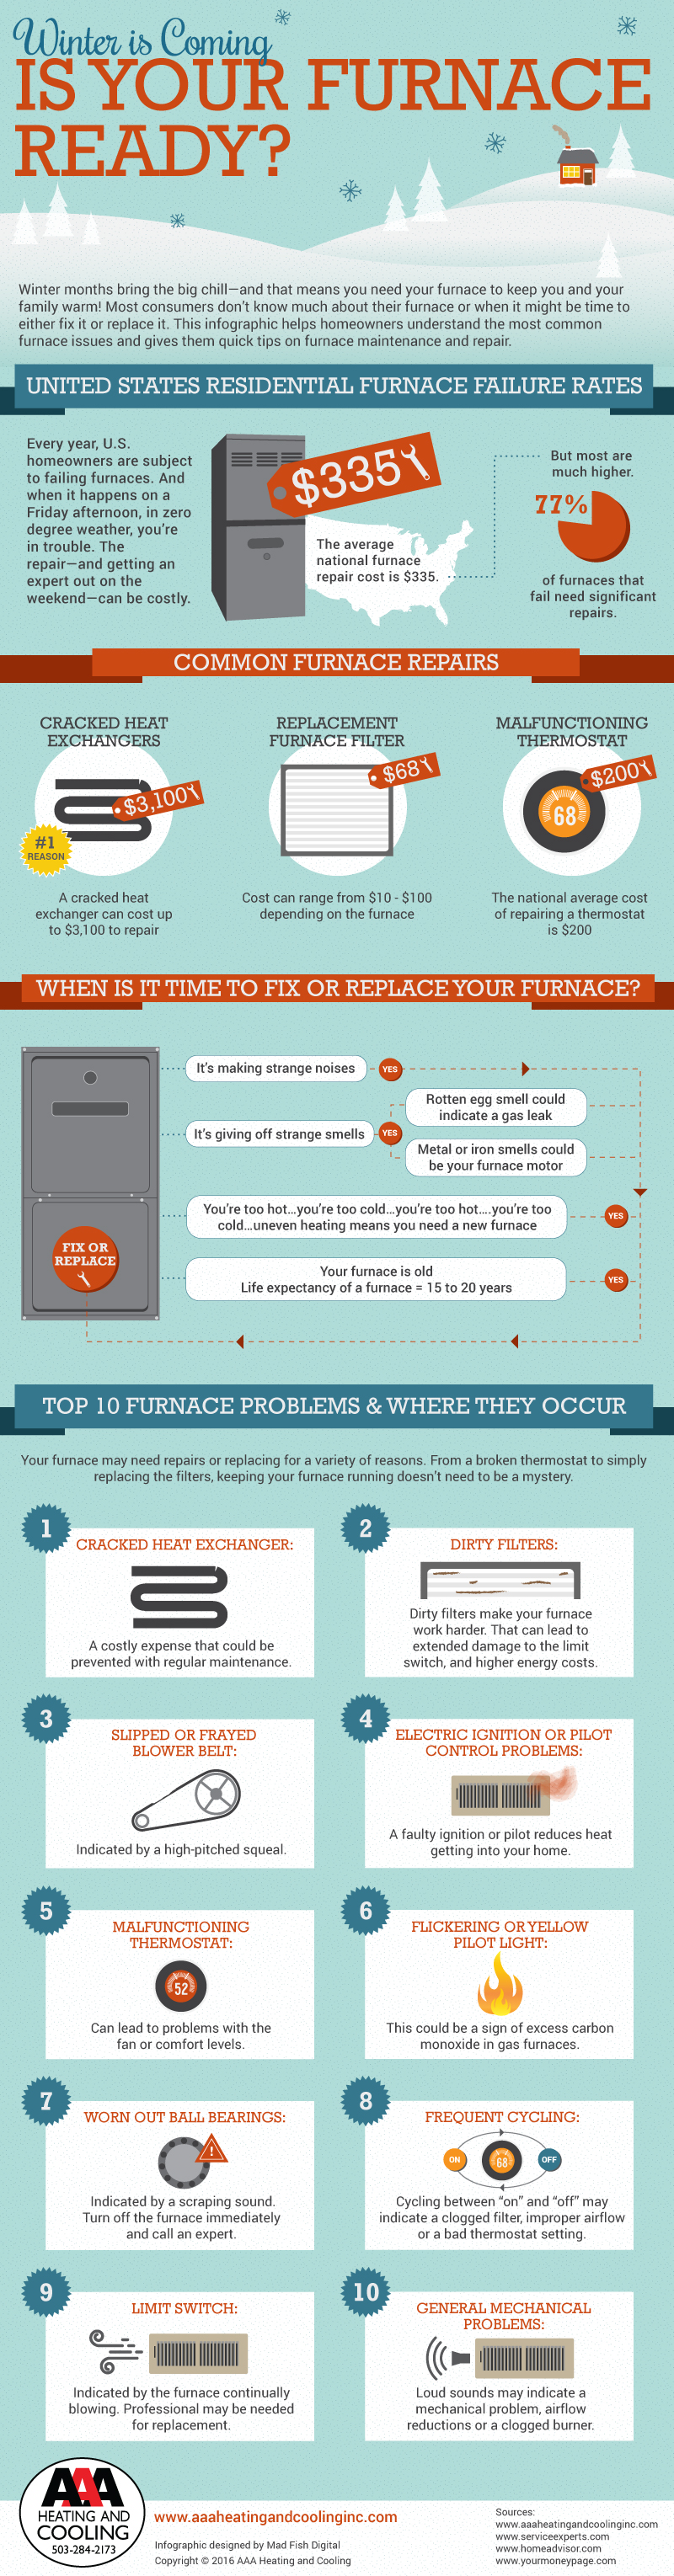 AAA_FurnaceFailure_infographic